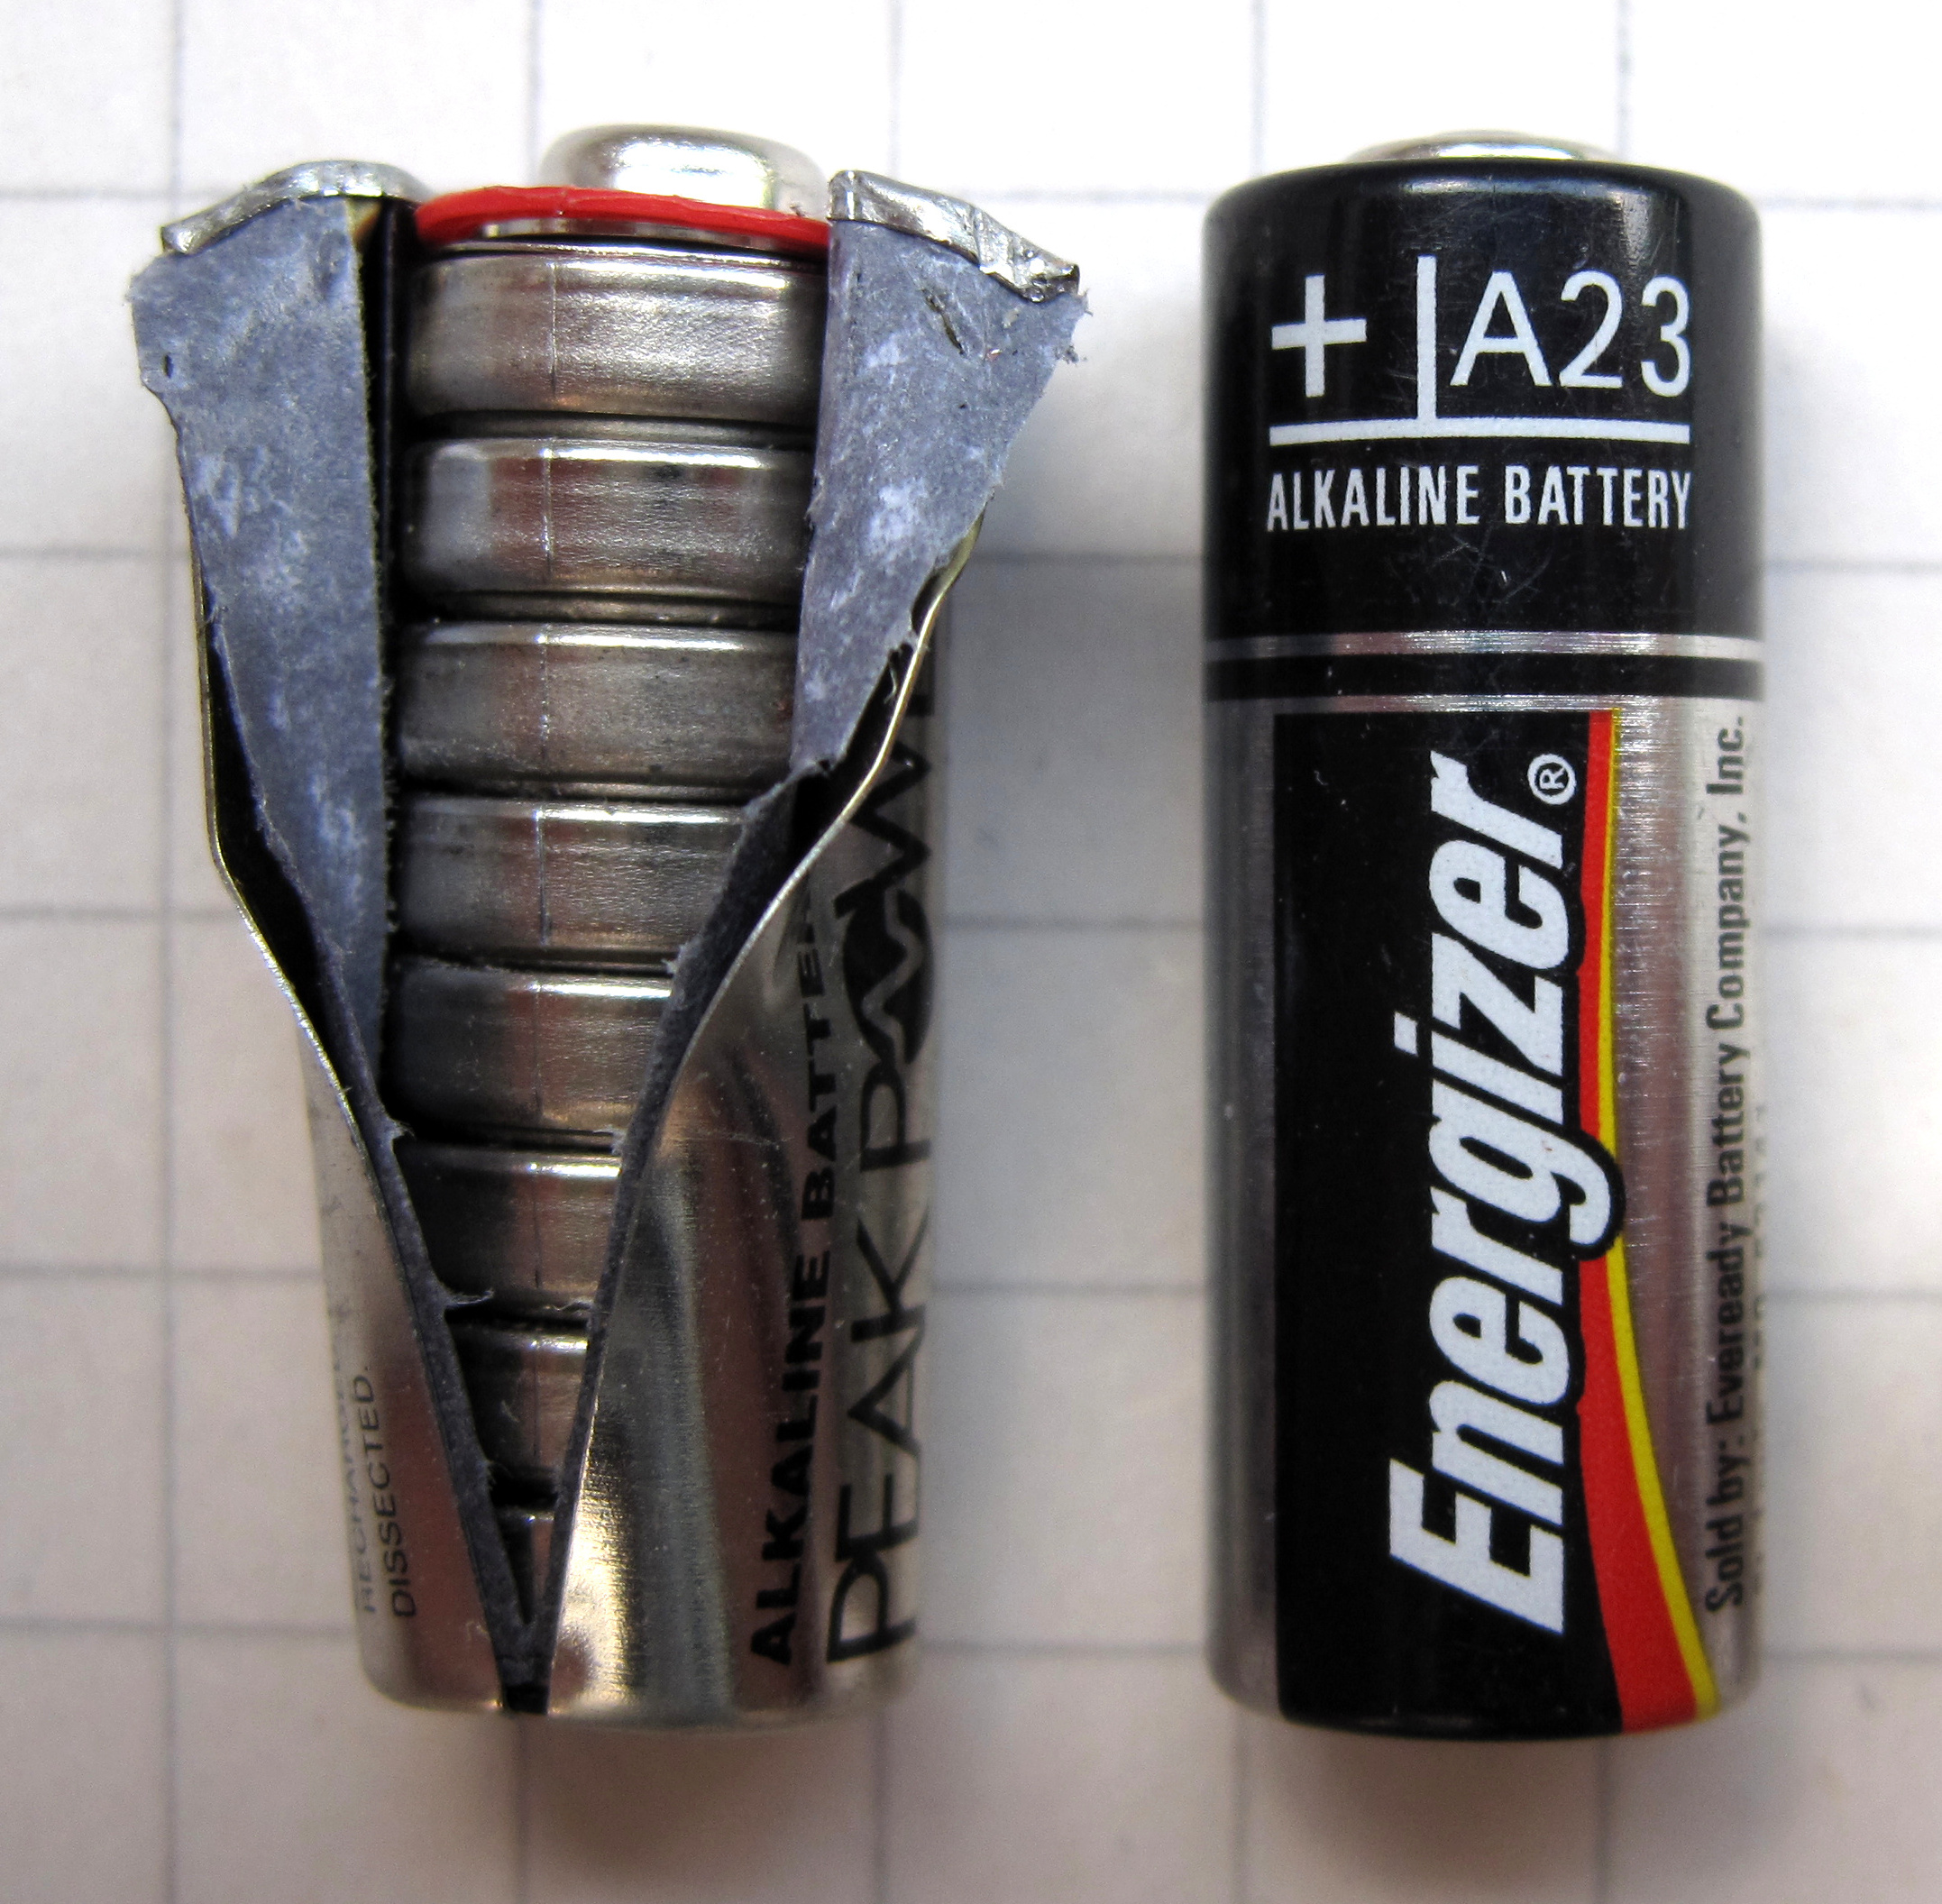 A23s Batterij File A23 Open Closed Jpg Wikimedia Commons